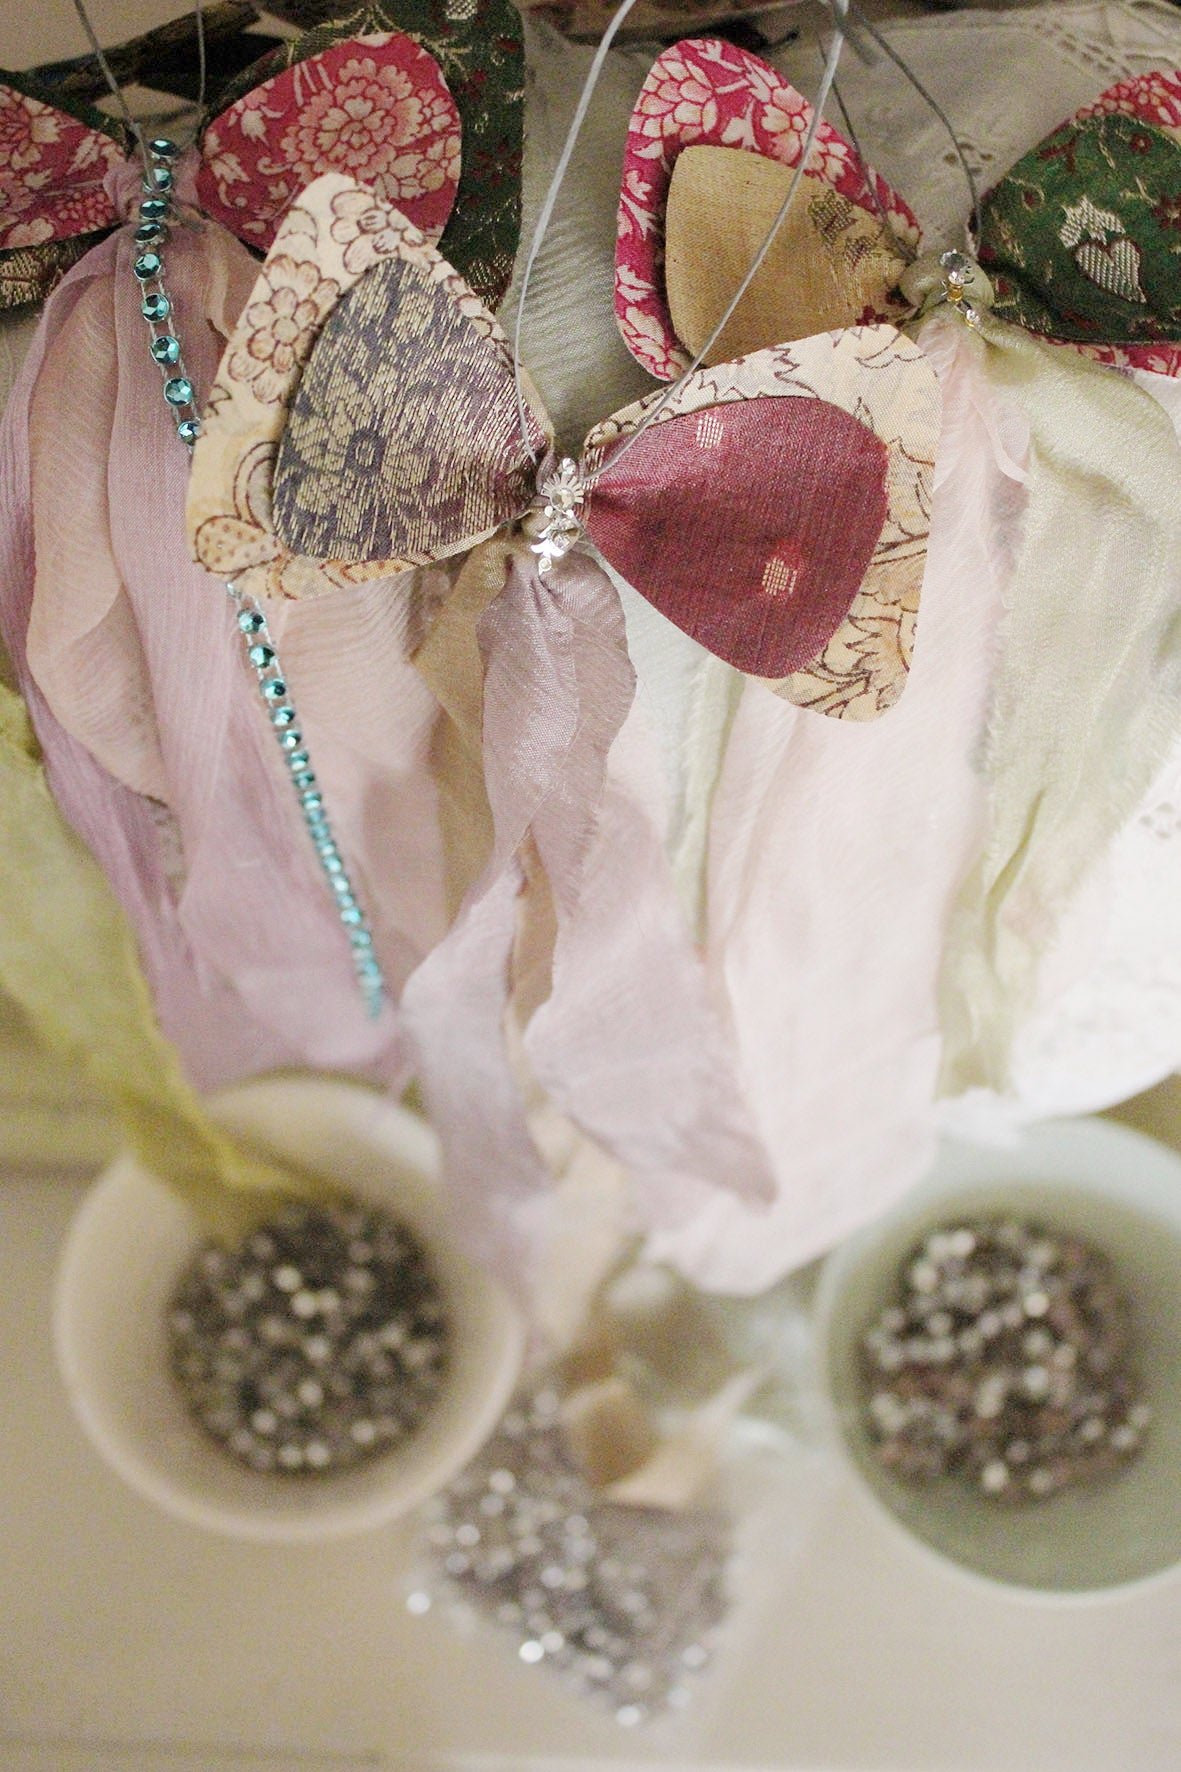 CHRISTMAS BOW DECORATION WORKSHOP - SATURDAY 30TH NOVEMBER - 2-4pm ~ THE READING ROOM, CRATHORNE